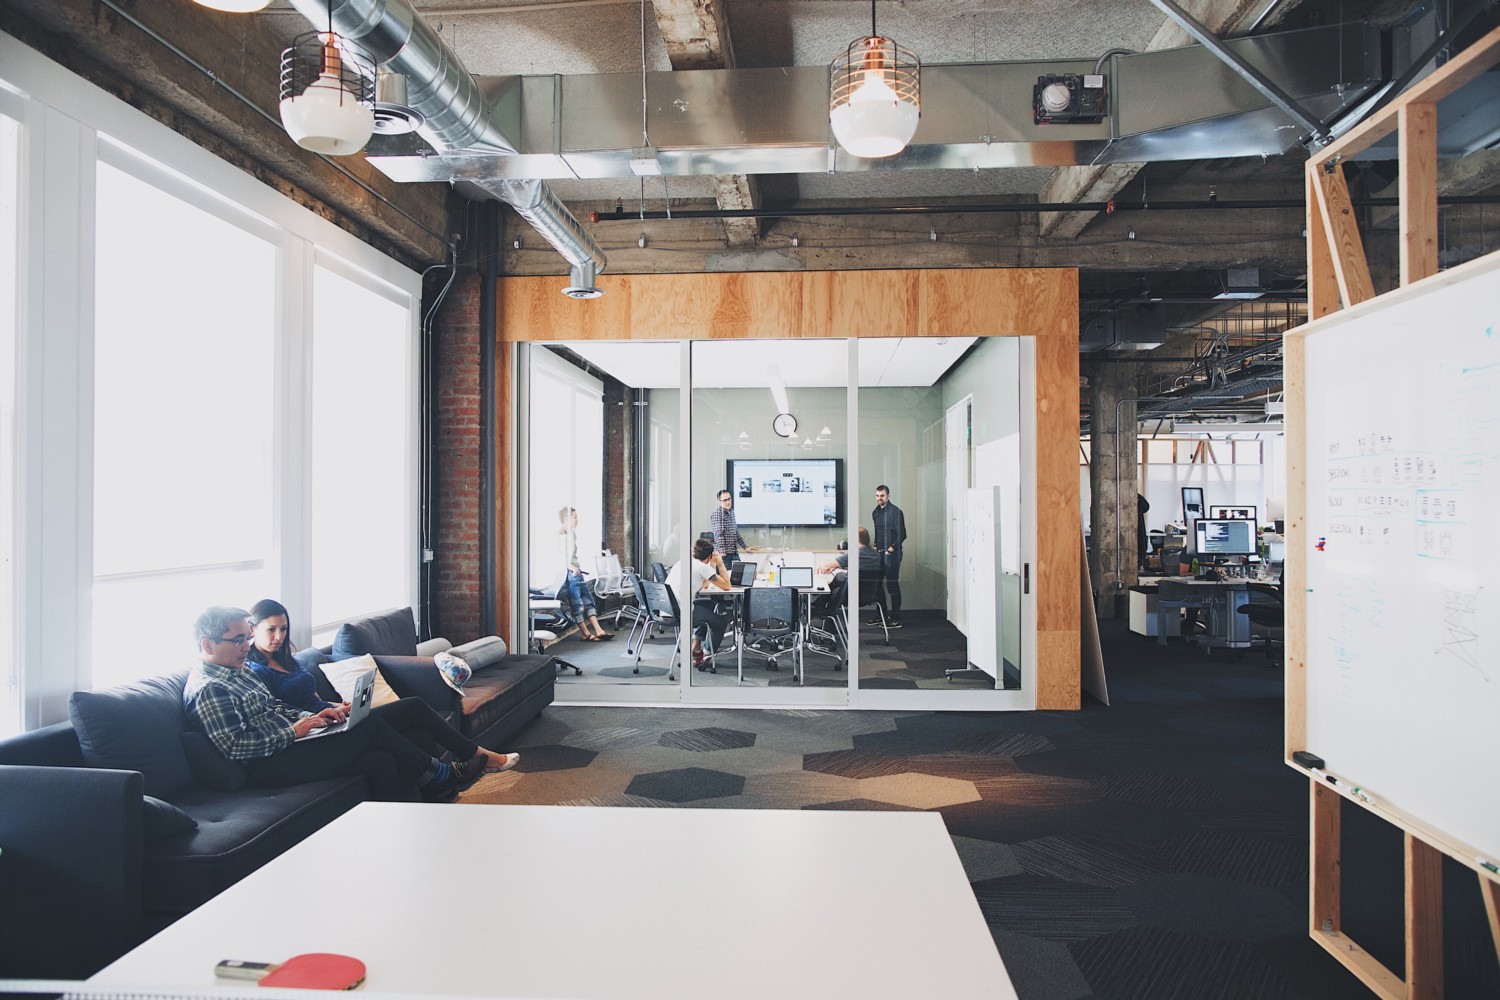 Medium's San Francisco Offices7